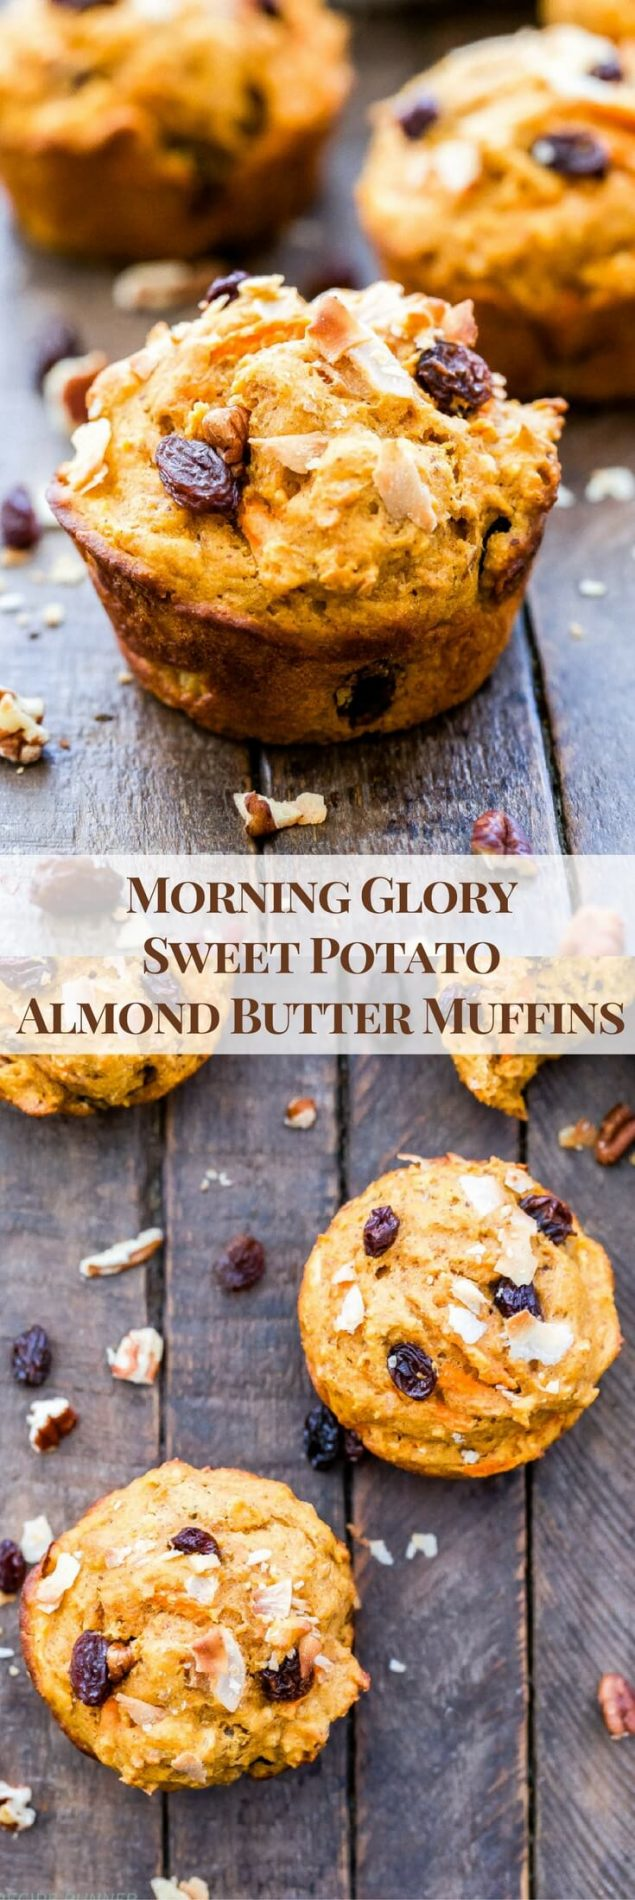 If you love muffins that are full of texture and flavor then you'll love these Morning Glory Sweet Potato Almond Butter Muffins. This incredibly moist and hearty muffin loaded with shredded carrots, coconut, raisins and pecans will remind you why homemade muffins are always the best!